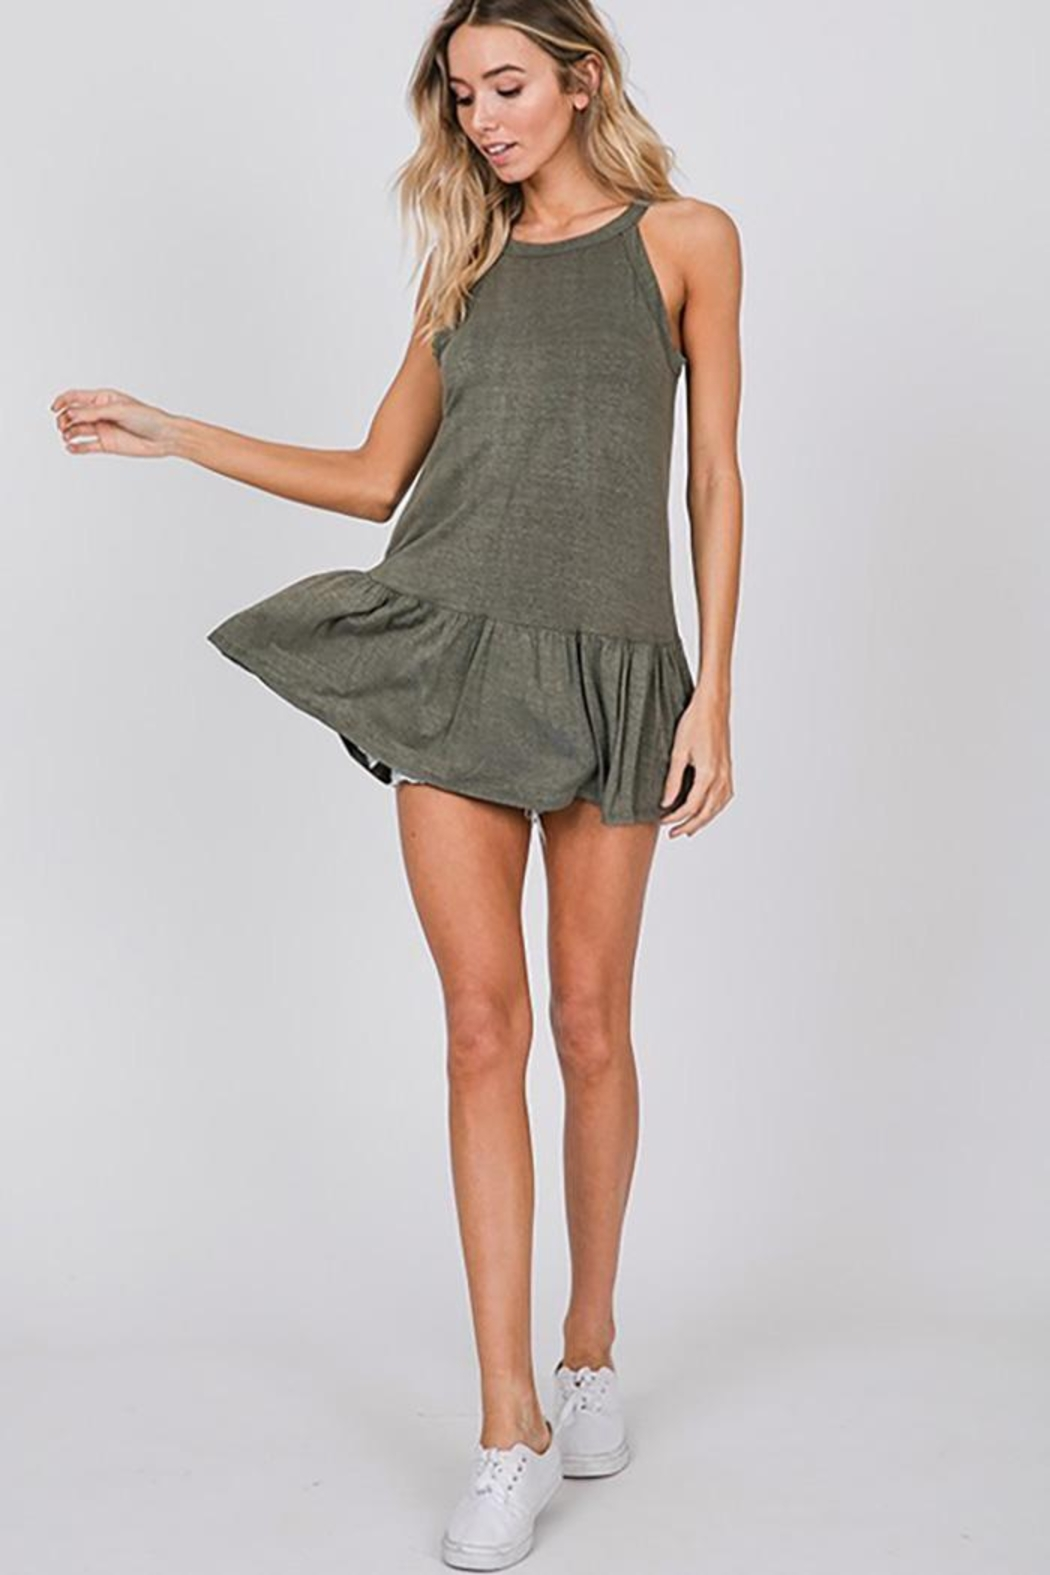 CY Fashion Washed Sleeveless Top With Ruffled Hem - Front Cropped Image